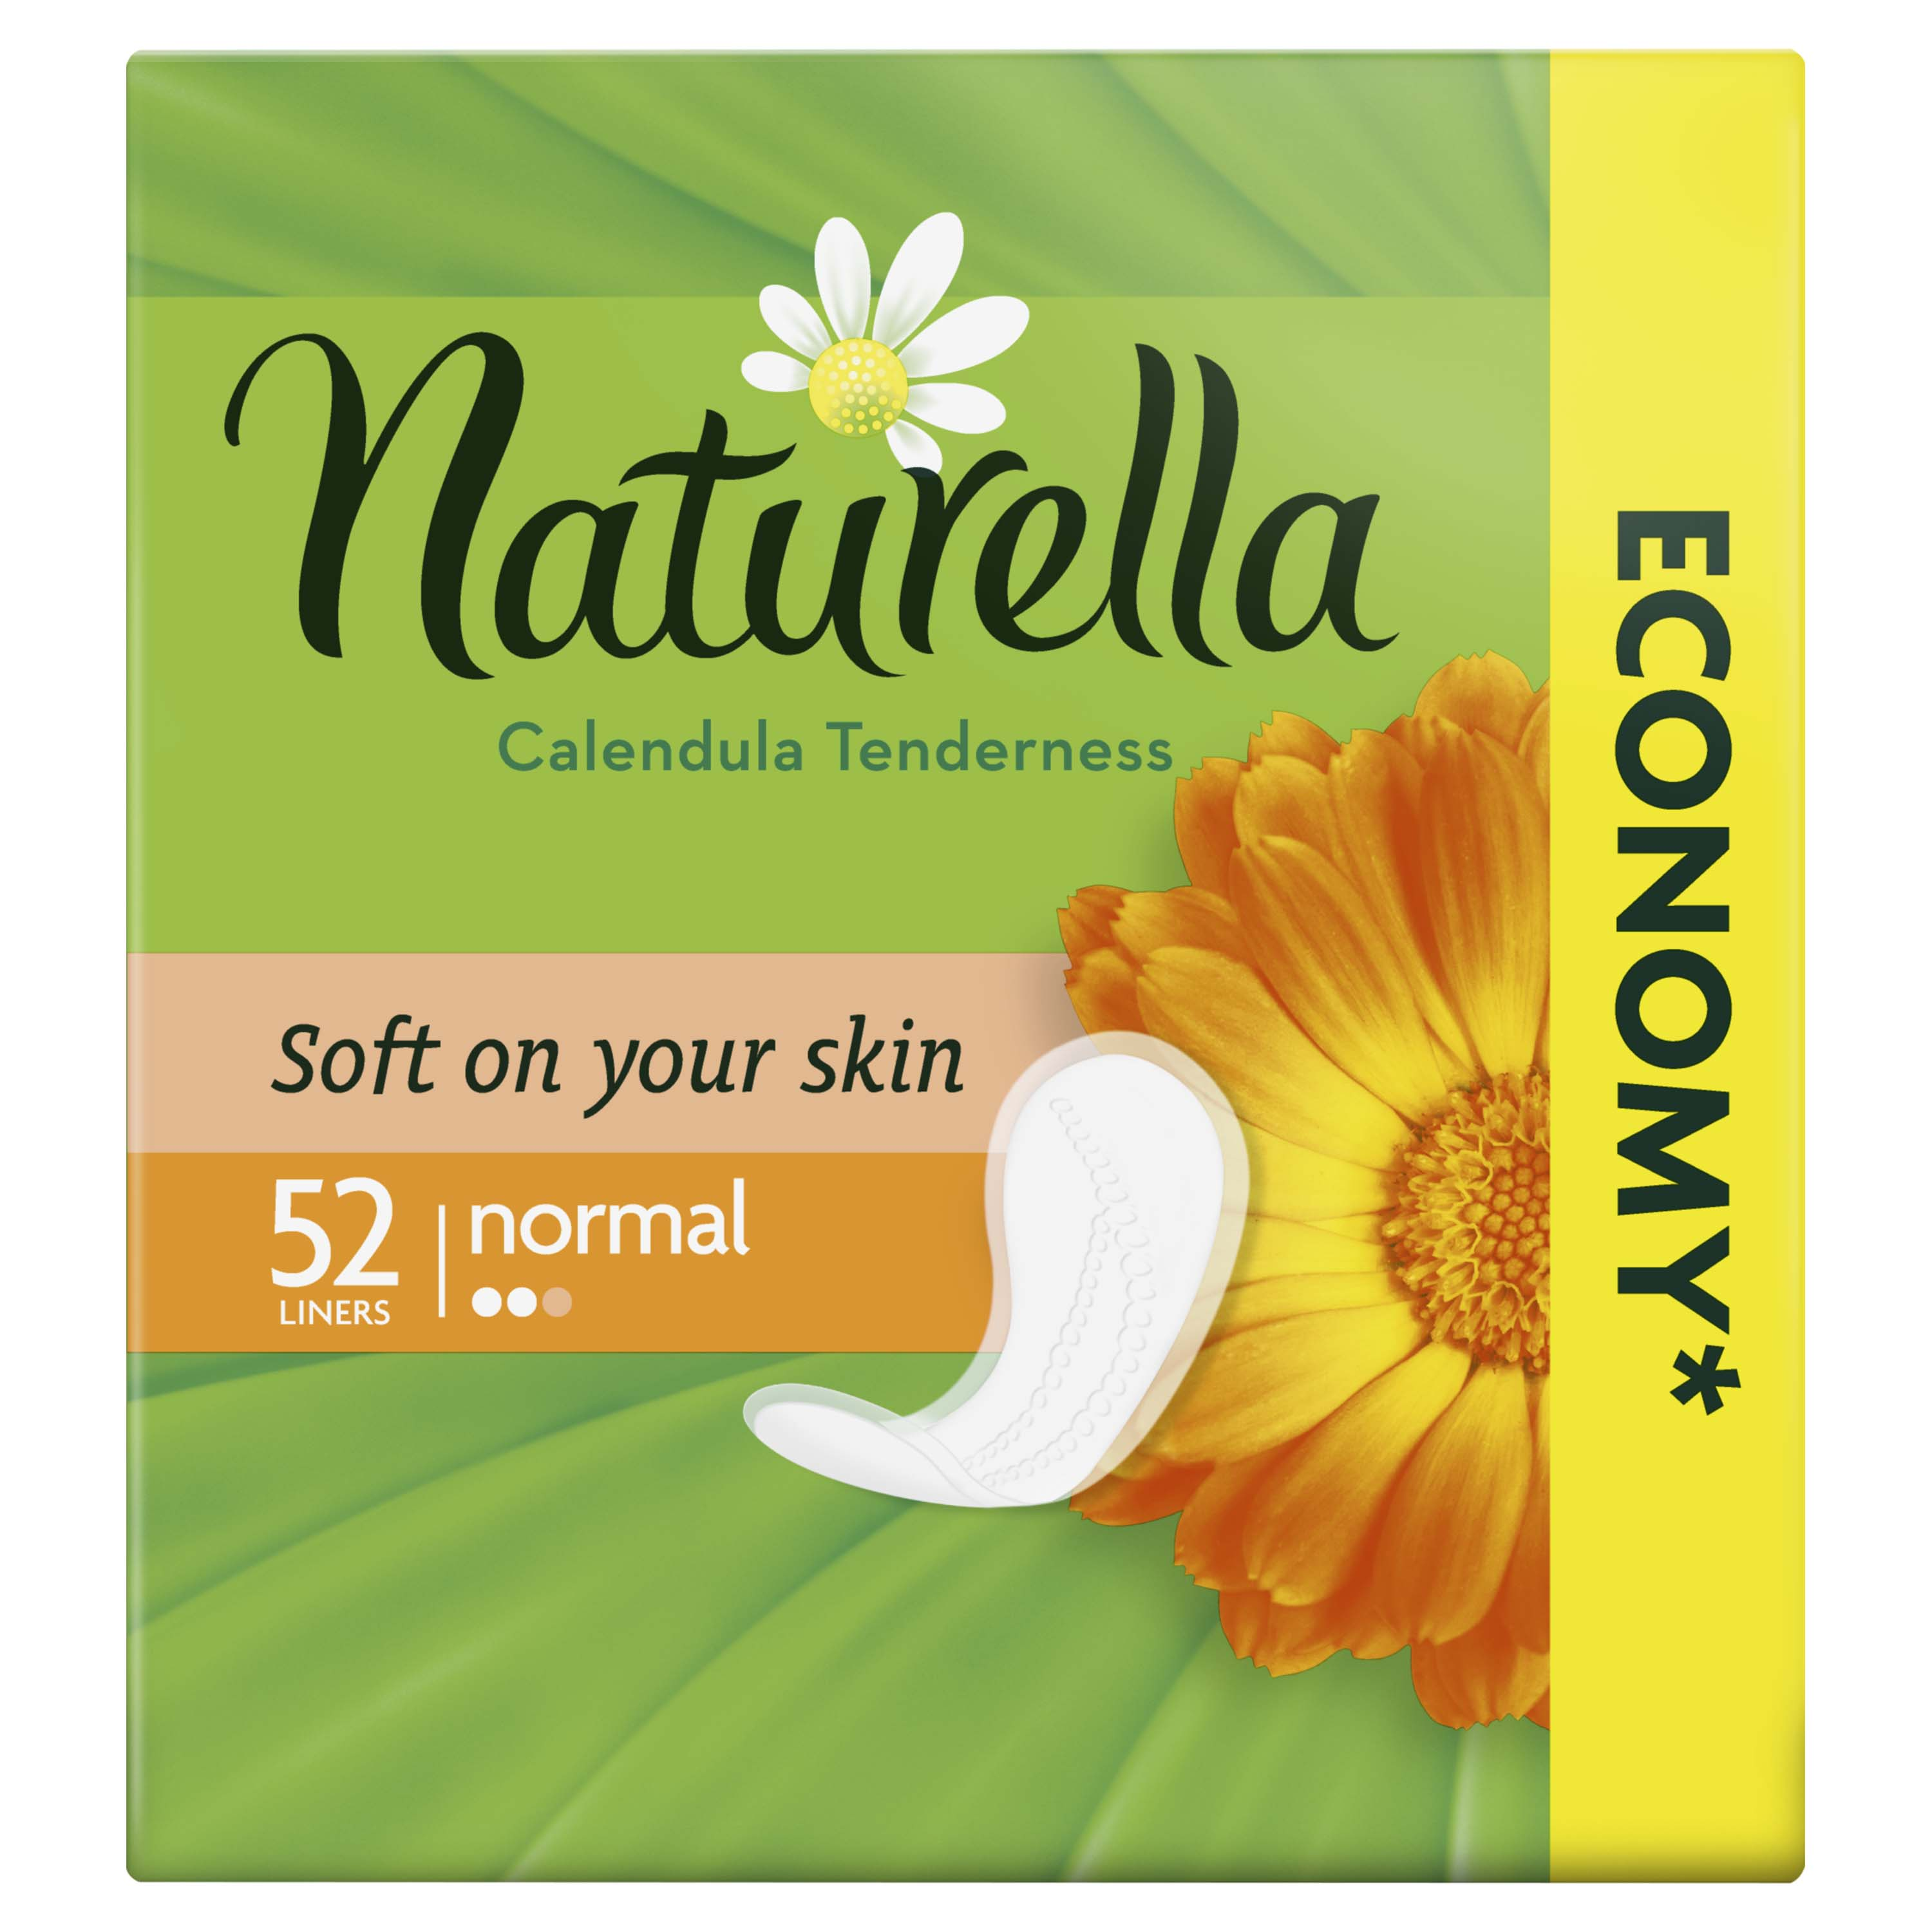 NATURELLA Calendula Tenderness Normal 60 ks – intimky